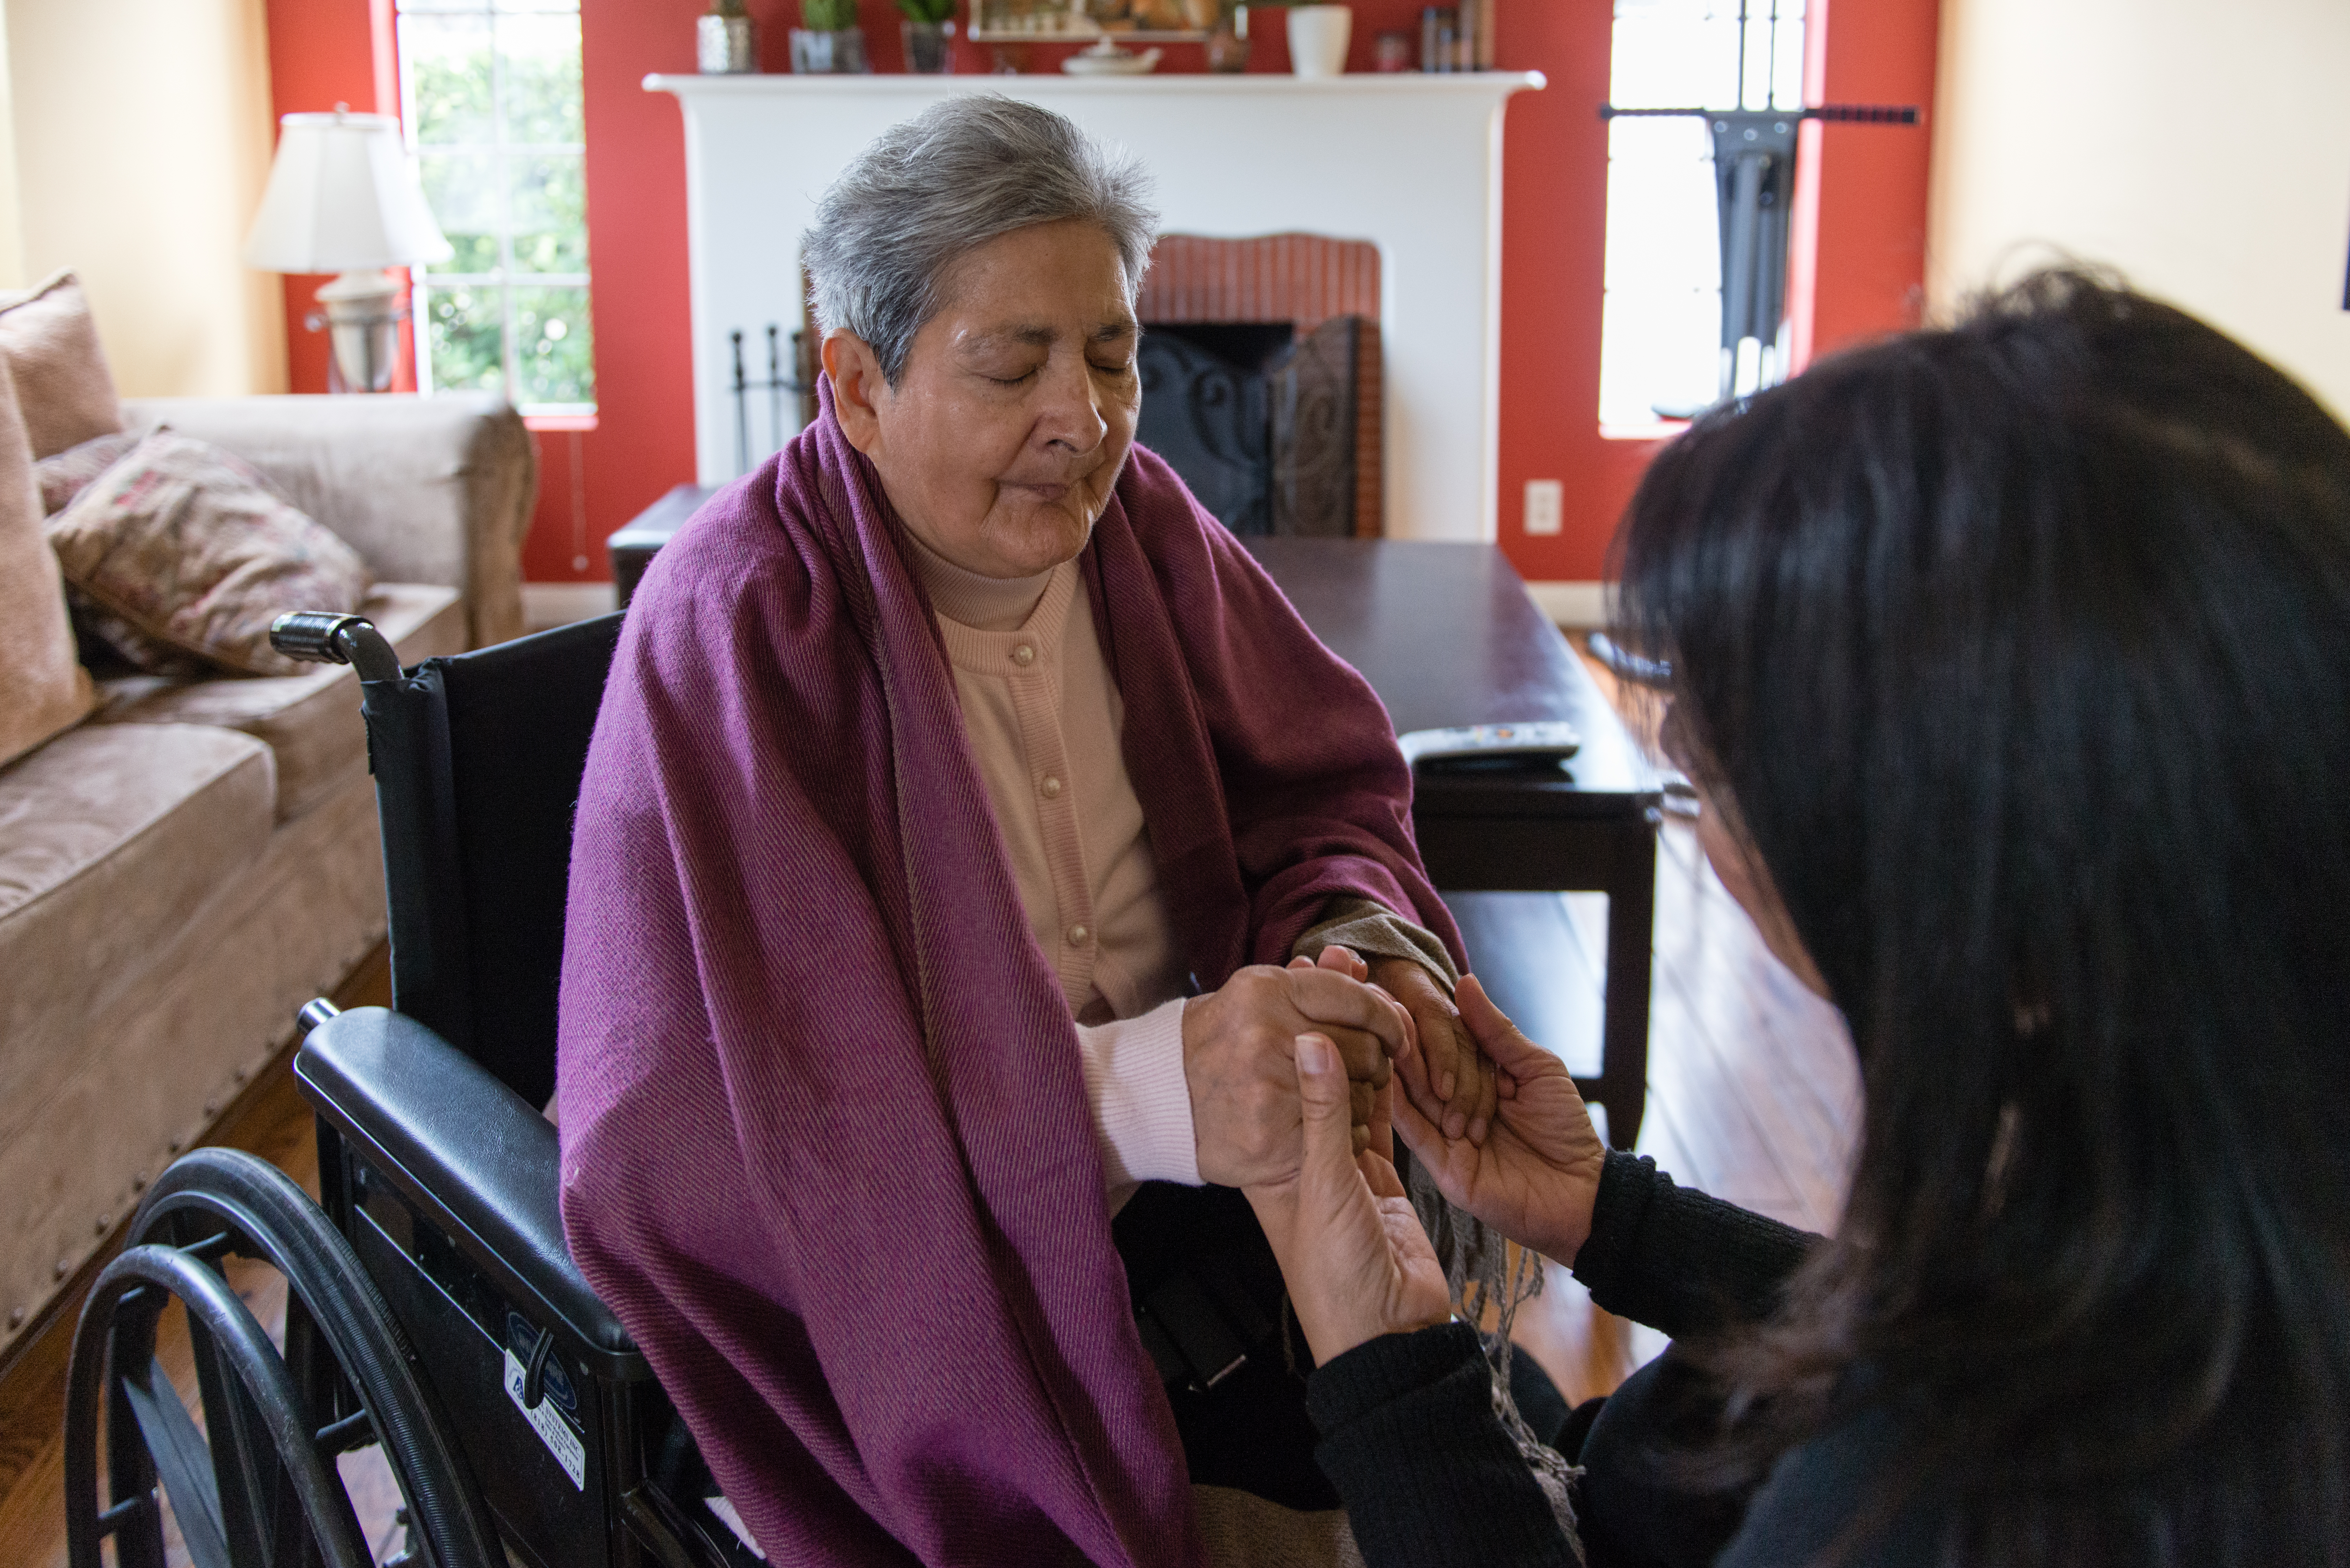 ania Yanes sits with mother, Blanca Rose Rivera, in her living room in North Hollywood, Calif., on Sunday, November 27, 2016. (Heidi de Marco/KHN)